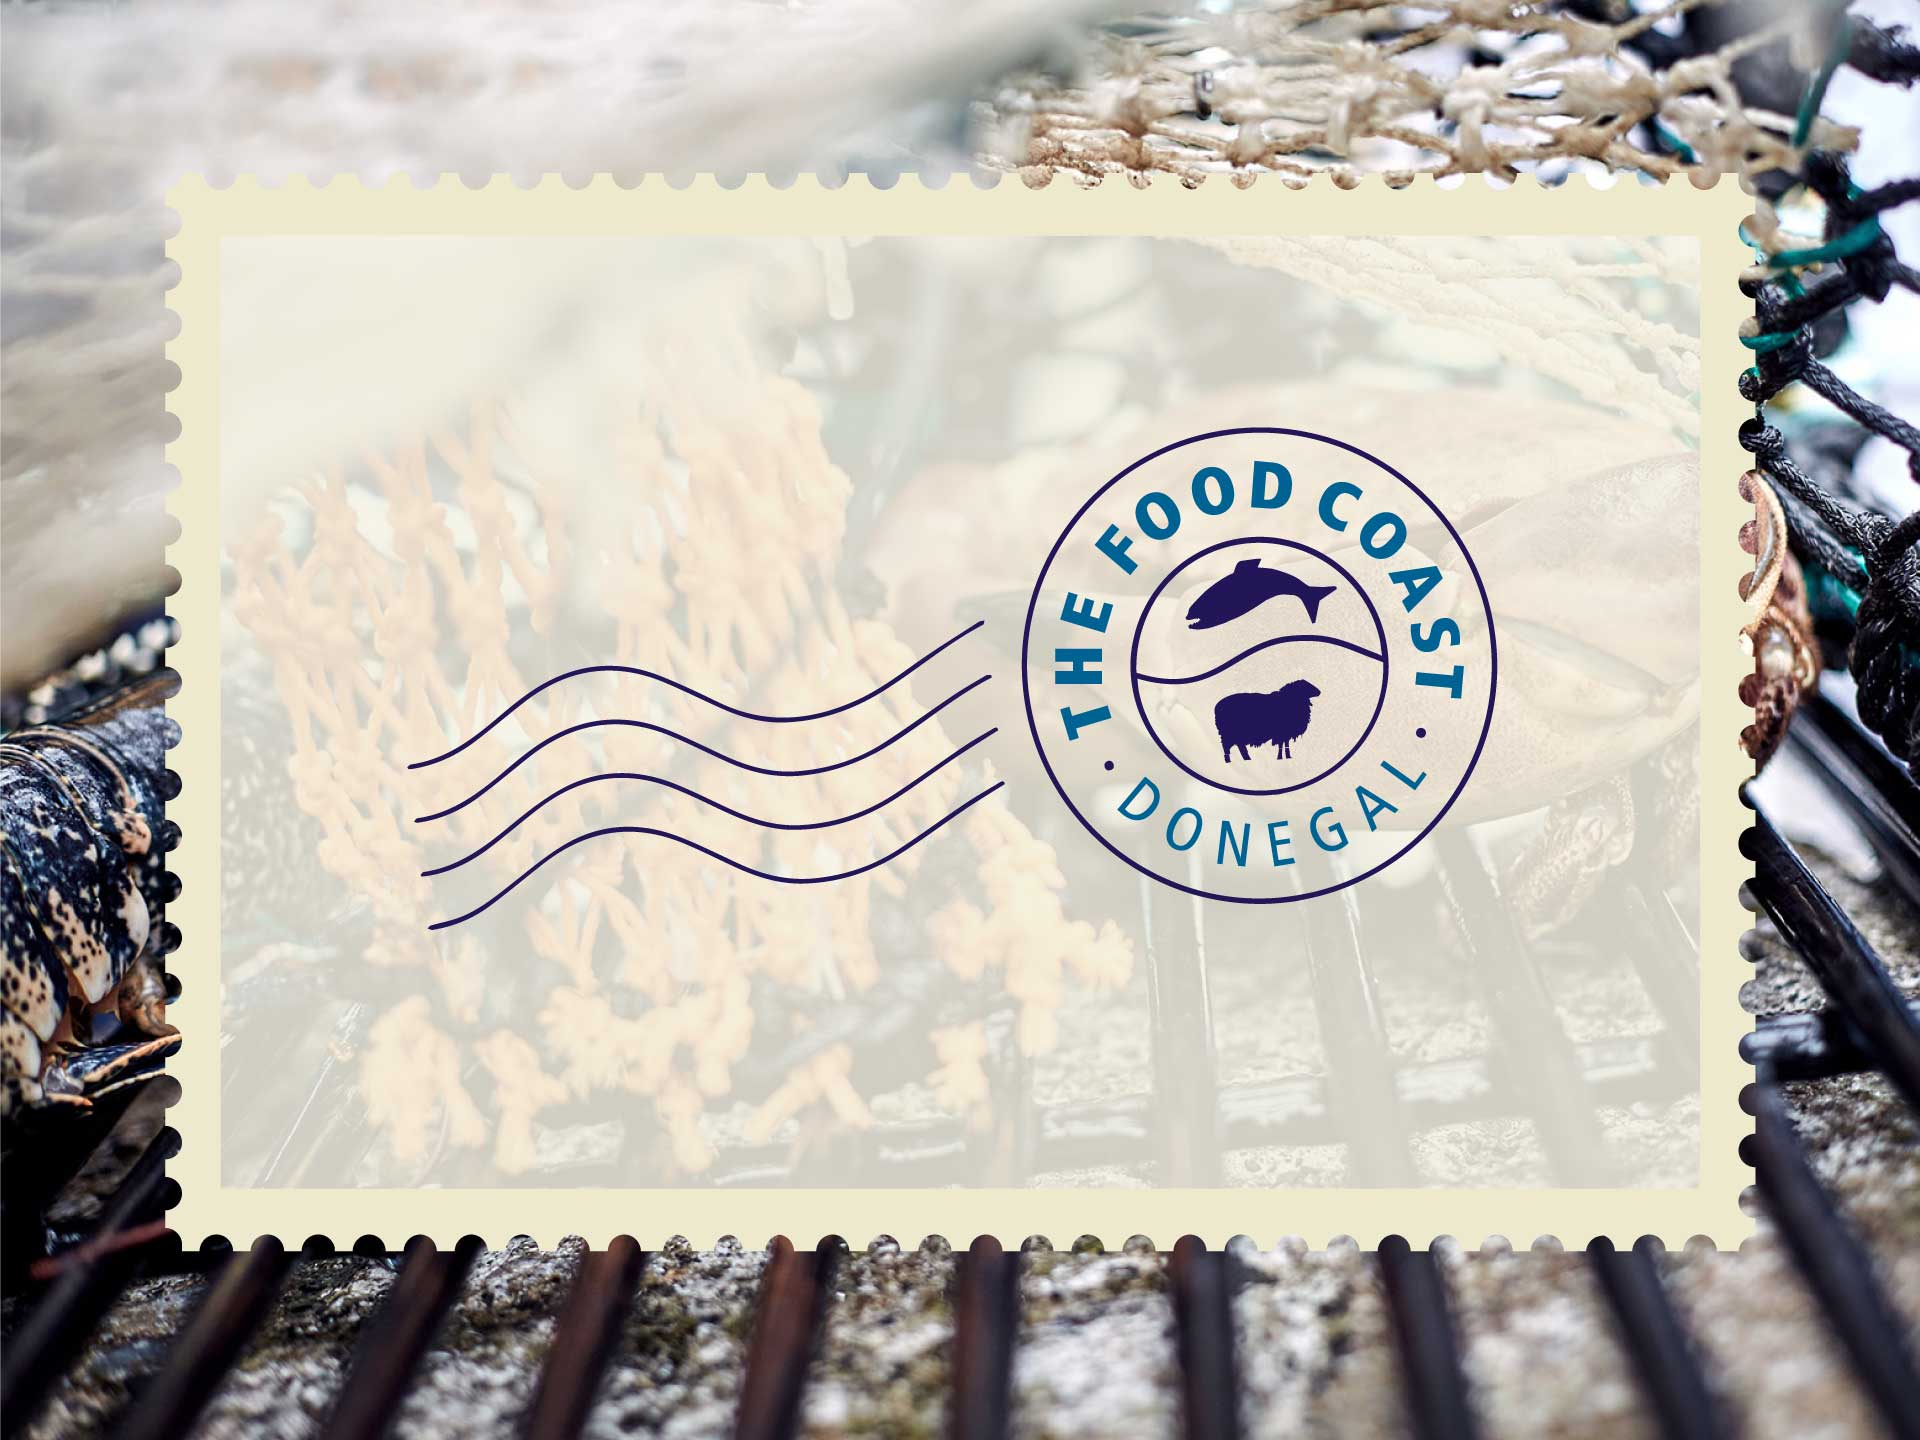 Food Coast Donegal e-Newsletter Digital Design